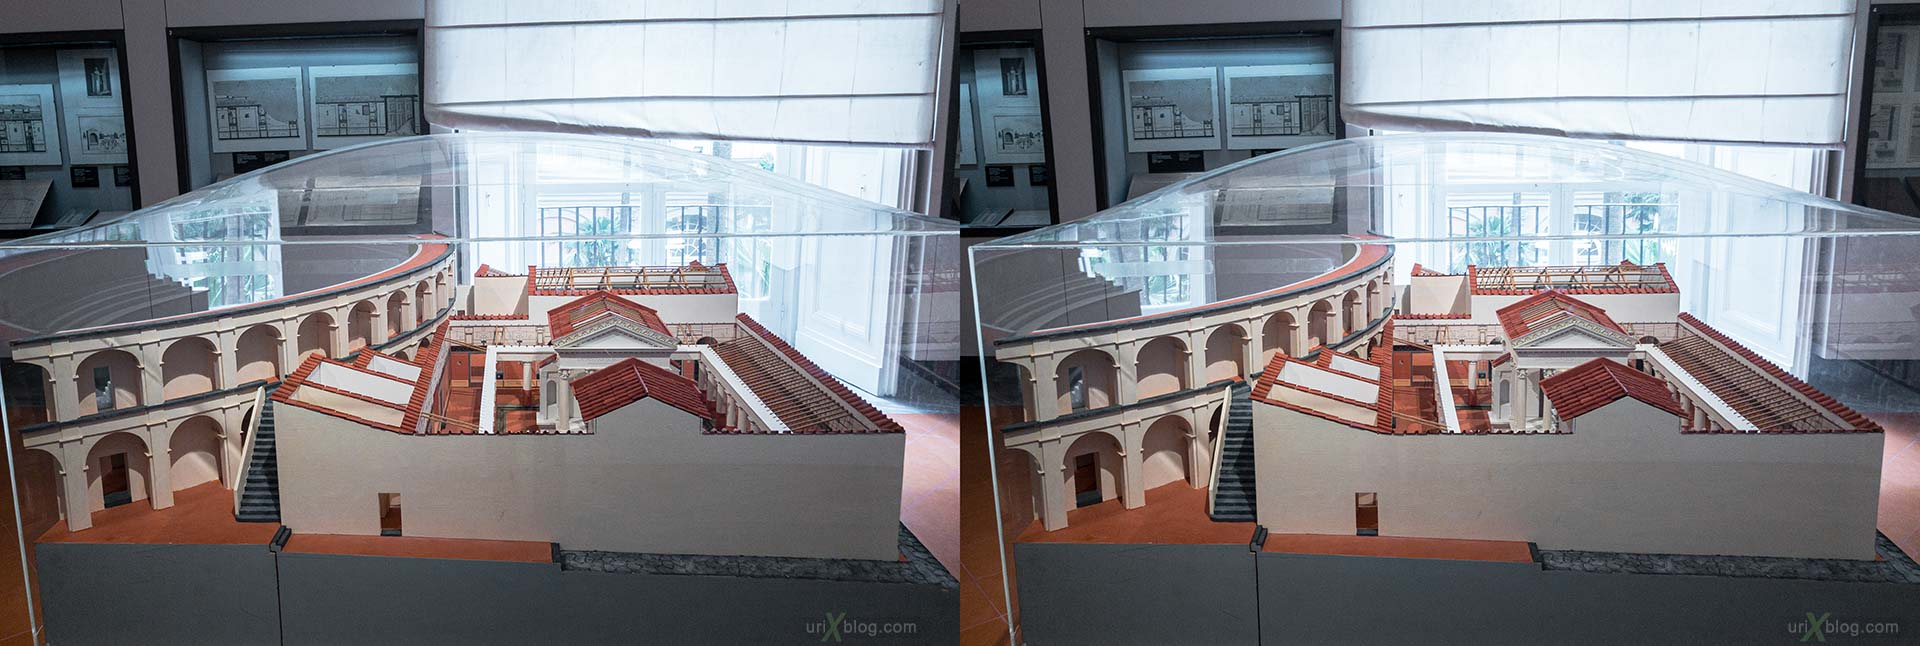 scale model, Tempio di Iside, Teatro Grande, National Archaeological Museum of Naples, ancient Rome, Pompei, exhibition, Naples, Italy, 3D, stereo pair, cross-eyed, crossview, cross view stereo pair, stereoscopic